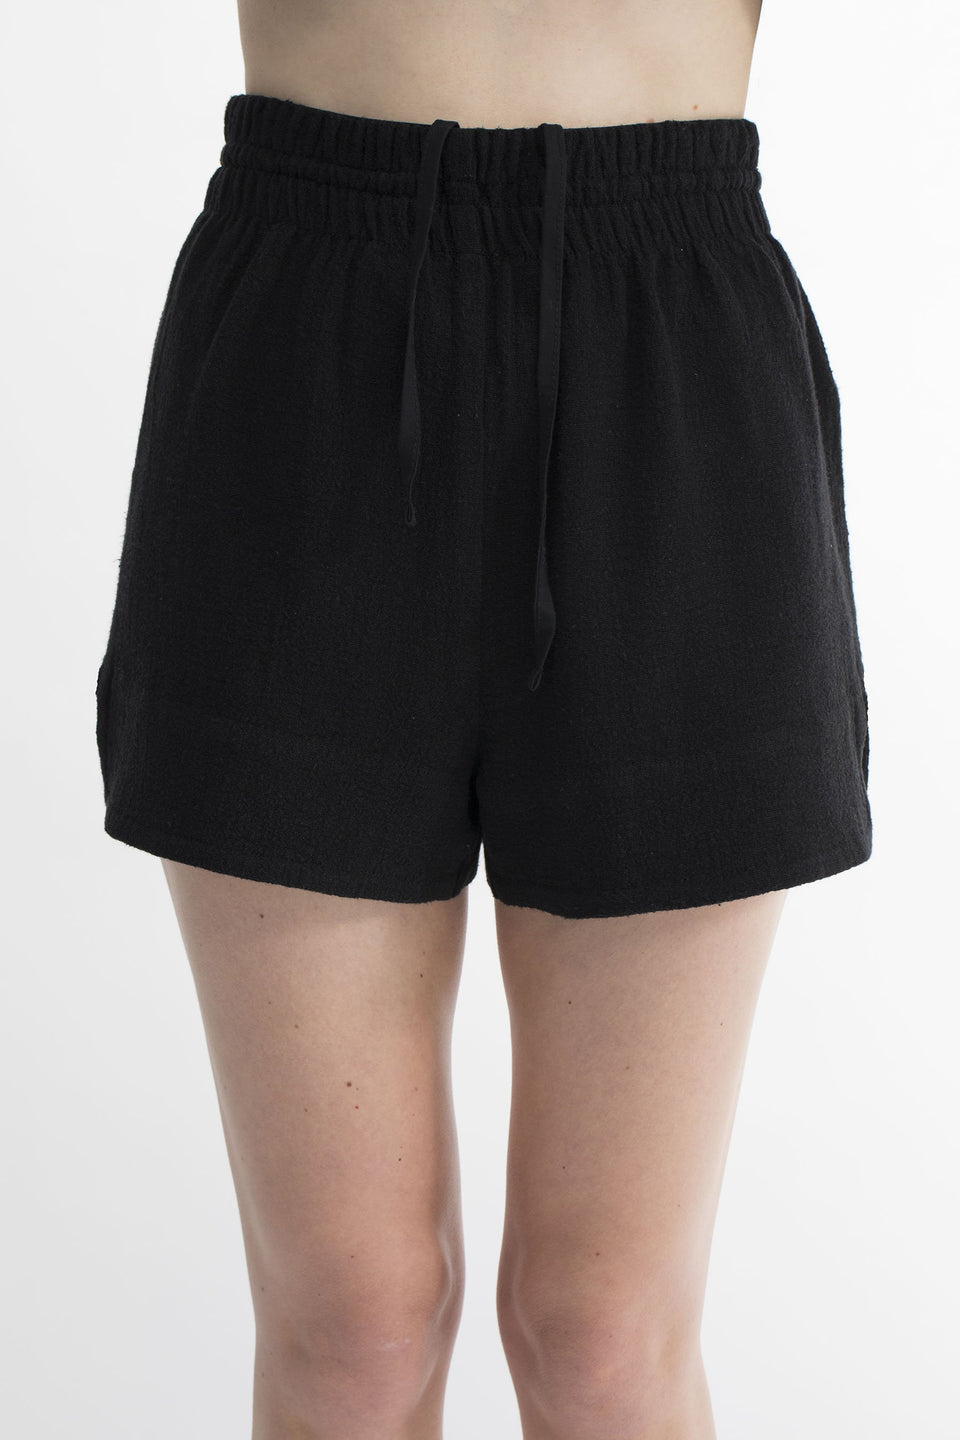 RAW Women Running Shorts Black